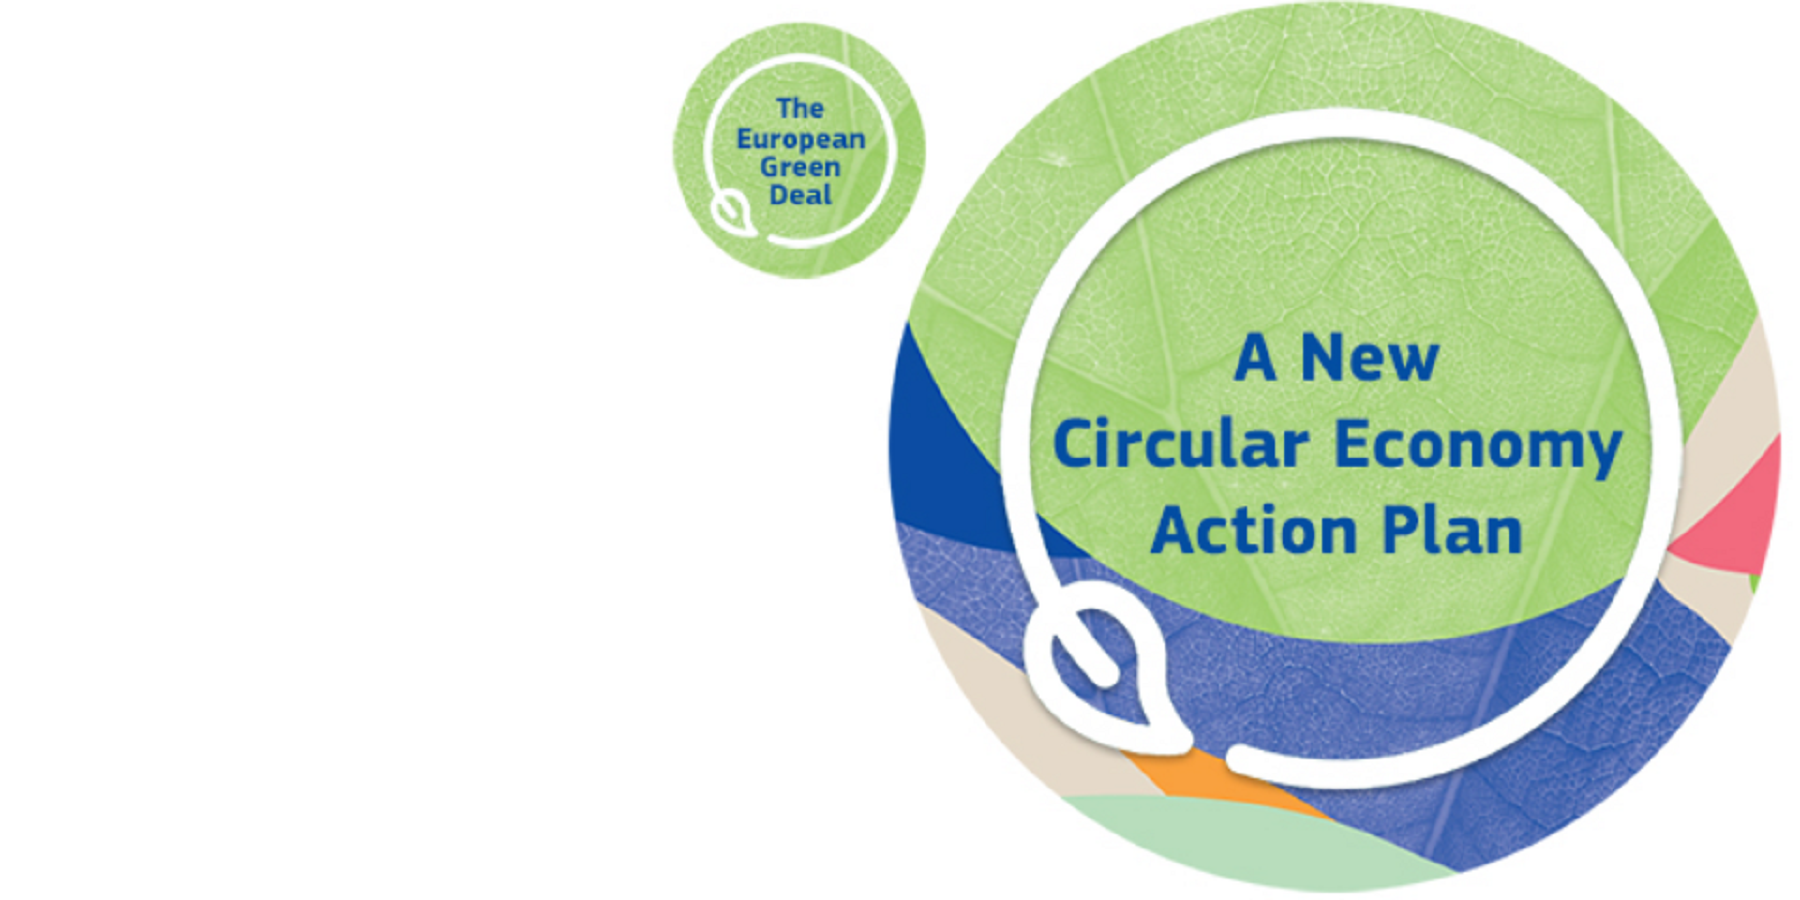 New Circular Economy Action Plan needs to be followed up on with binding rules